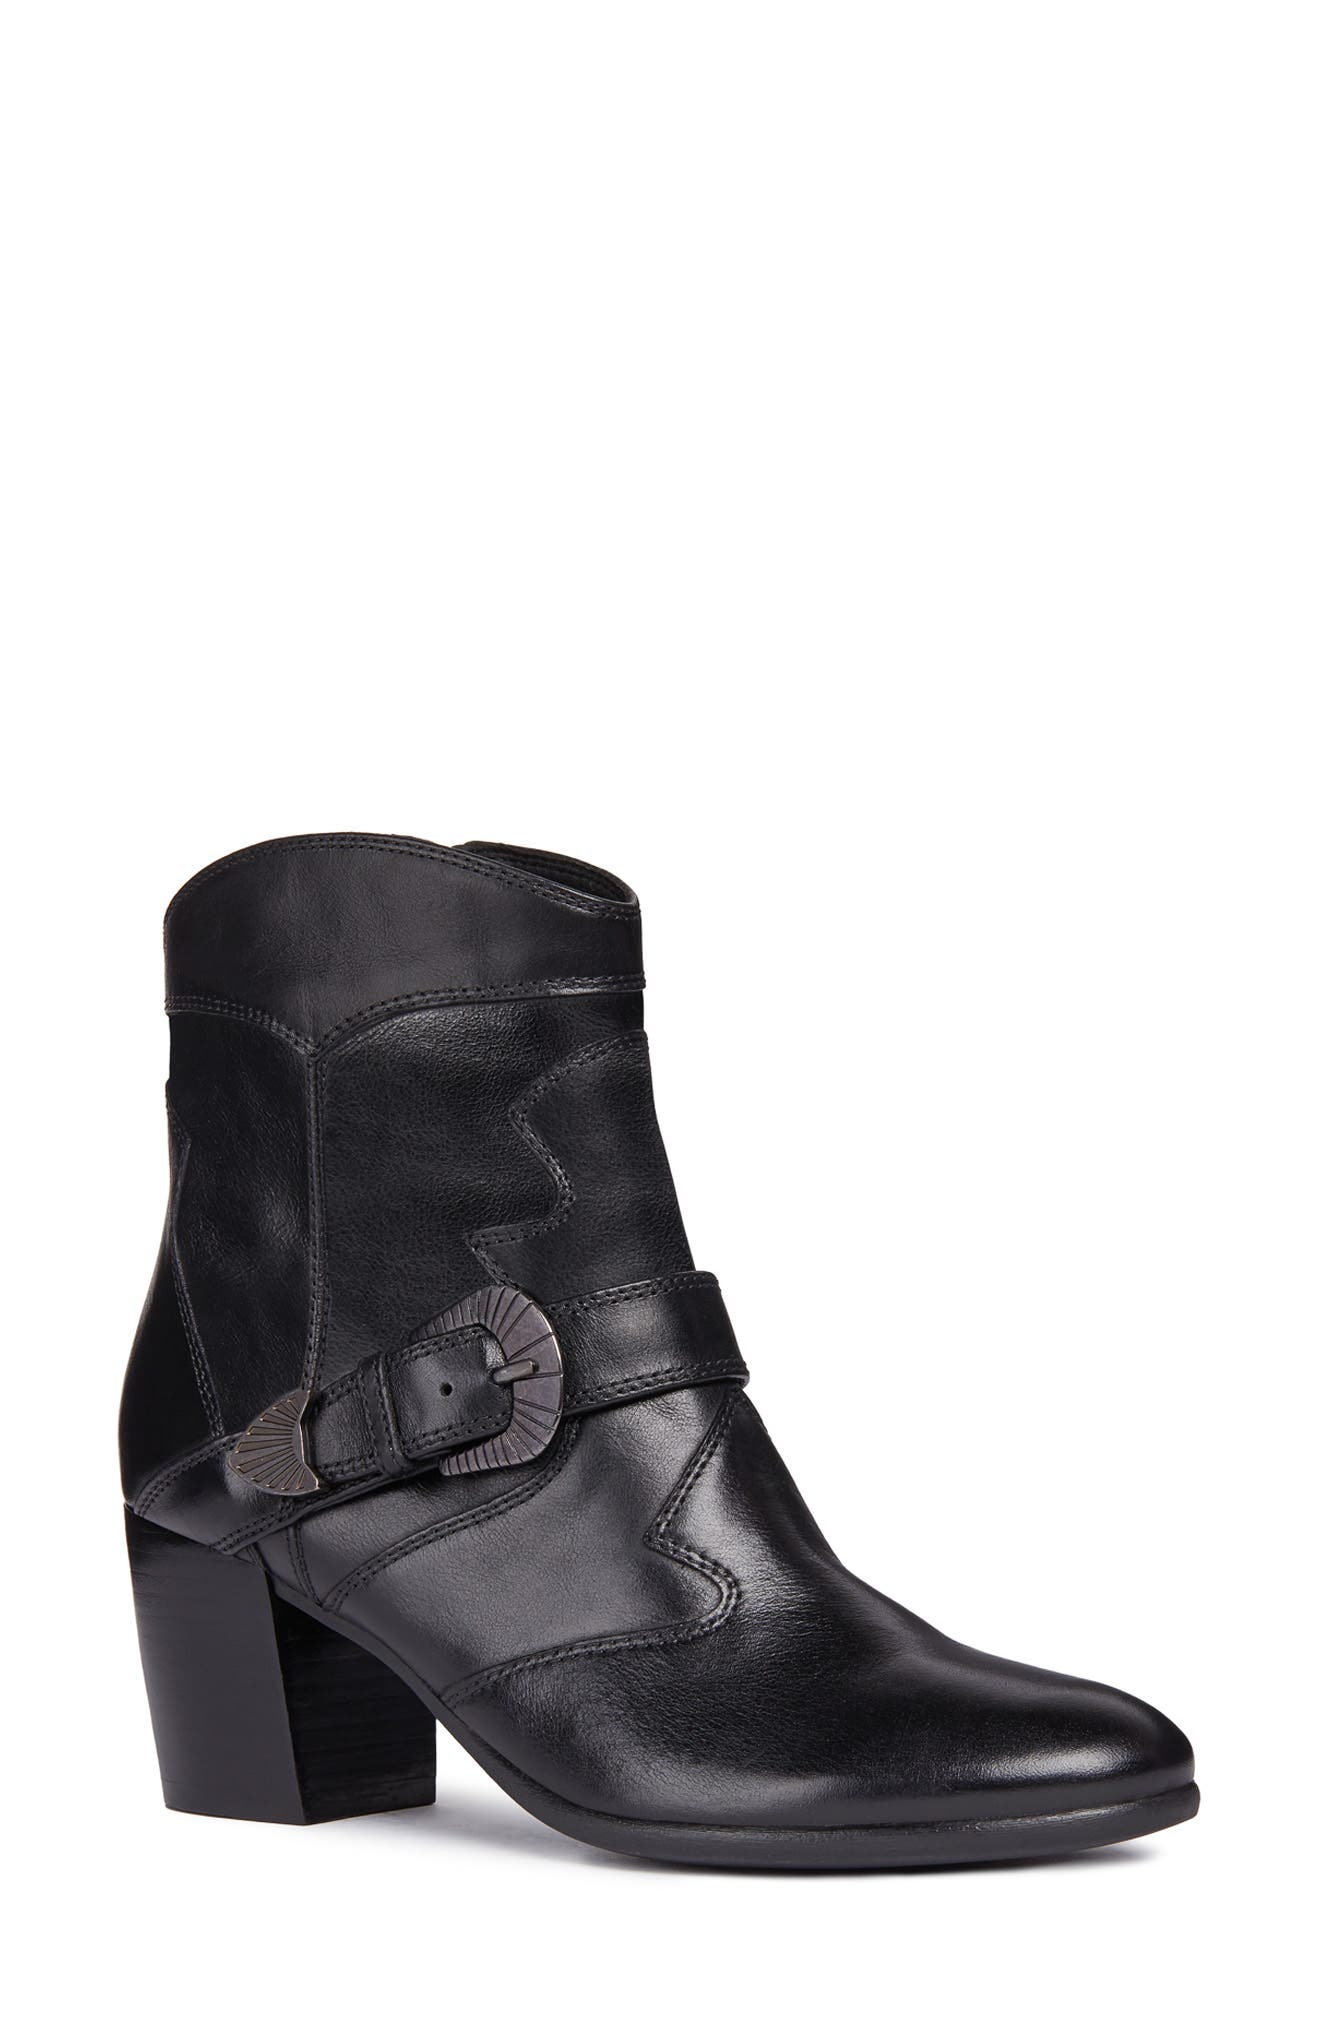 Lucinda Bootie,                         Main,                         color, BLACK LEATHER